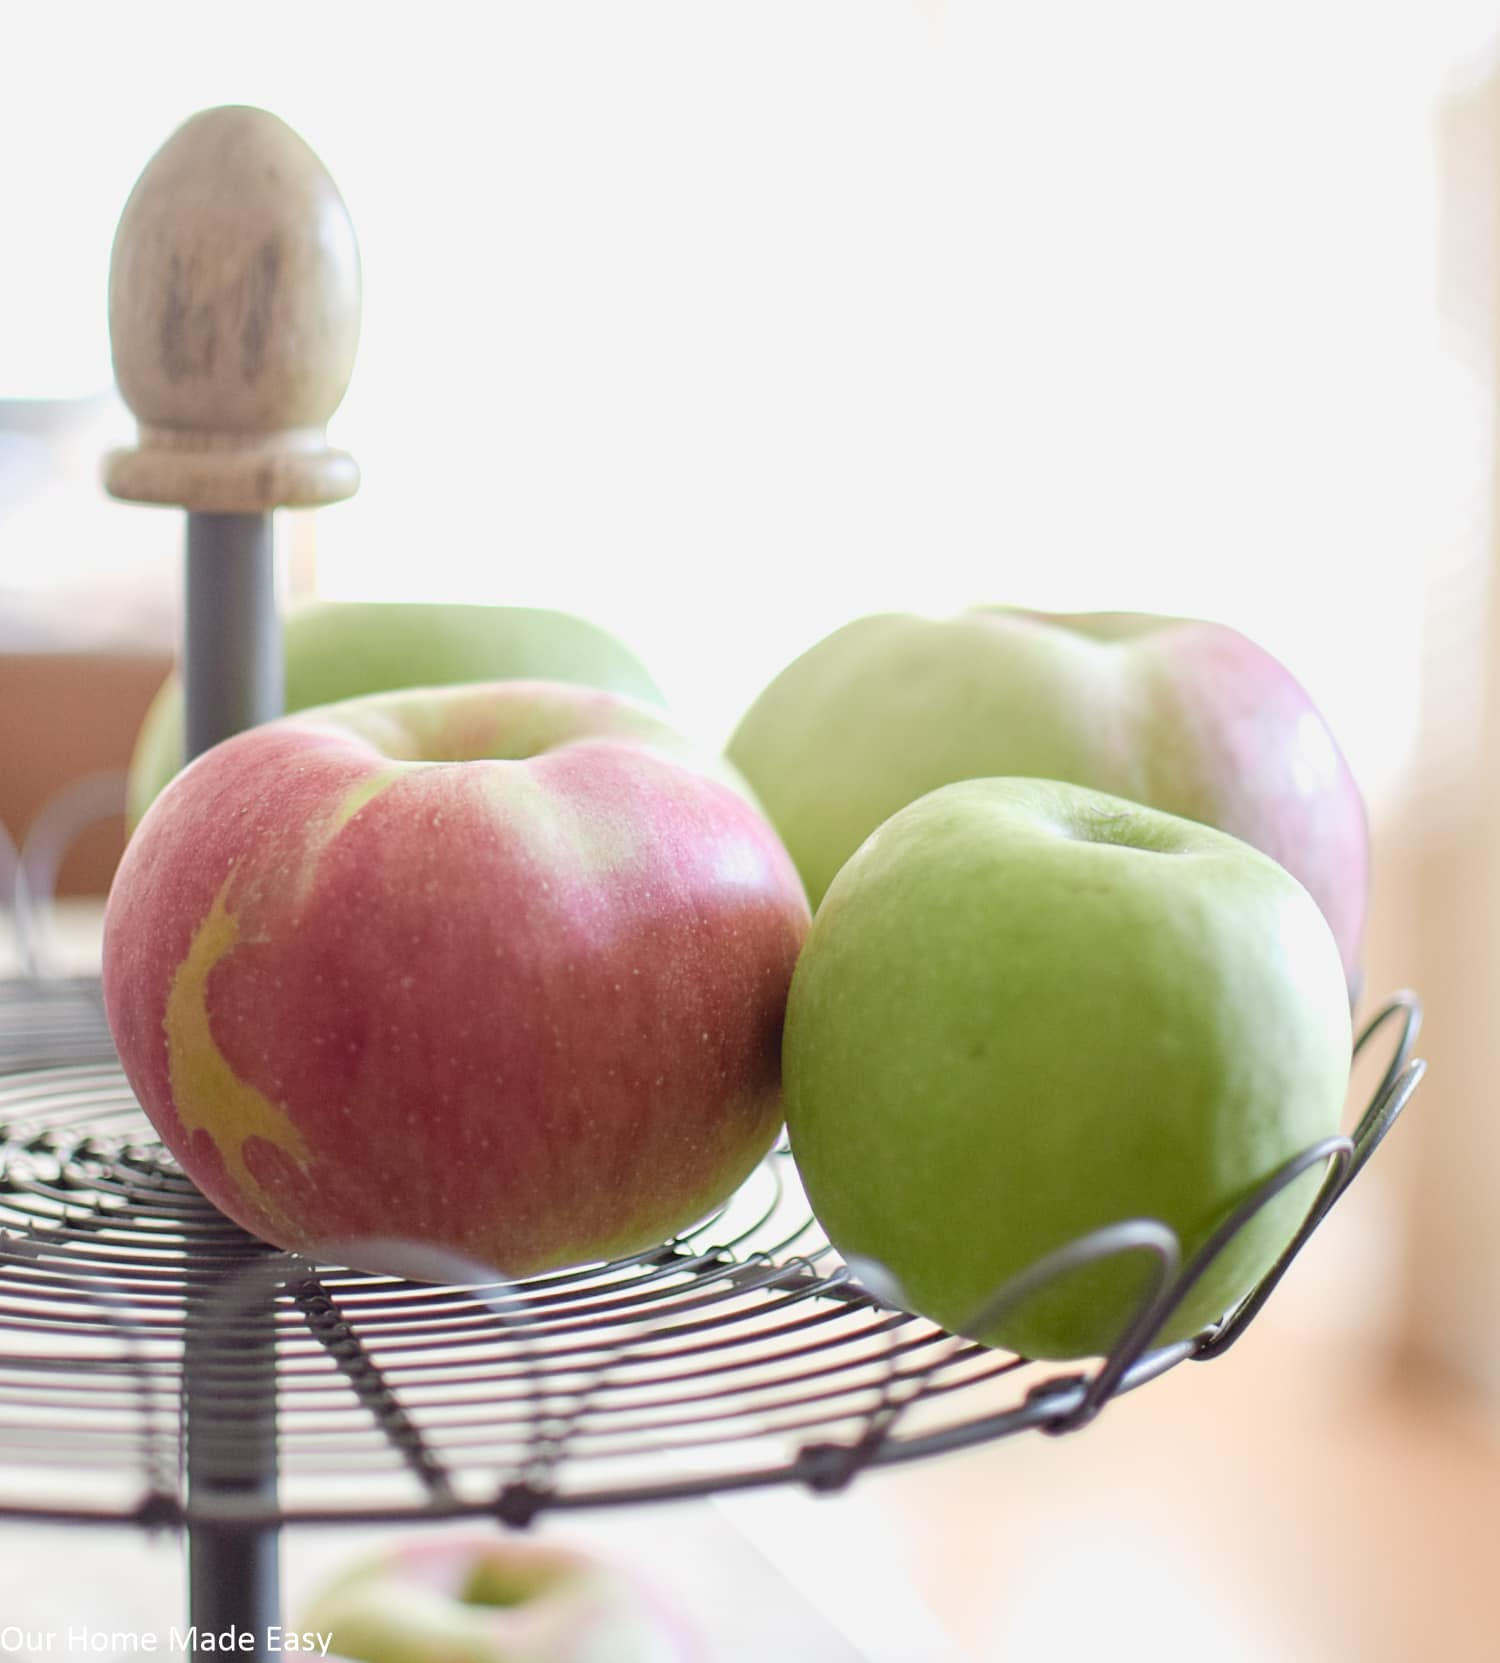 Delicious and juicy fresh-picked apples from the orchard